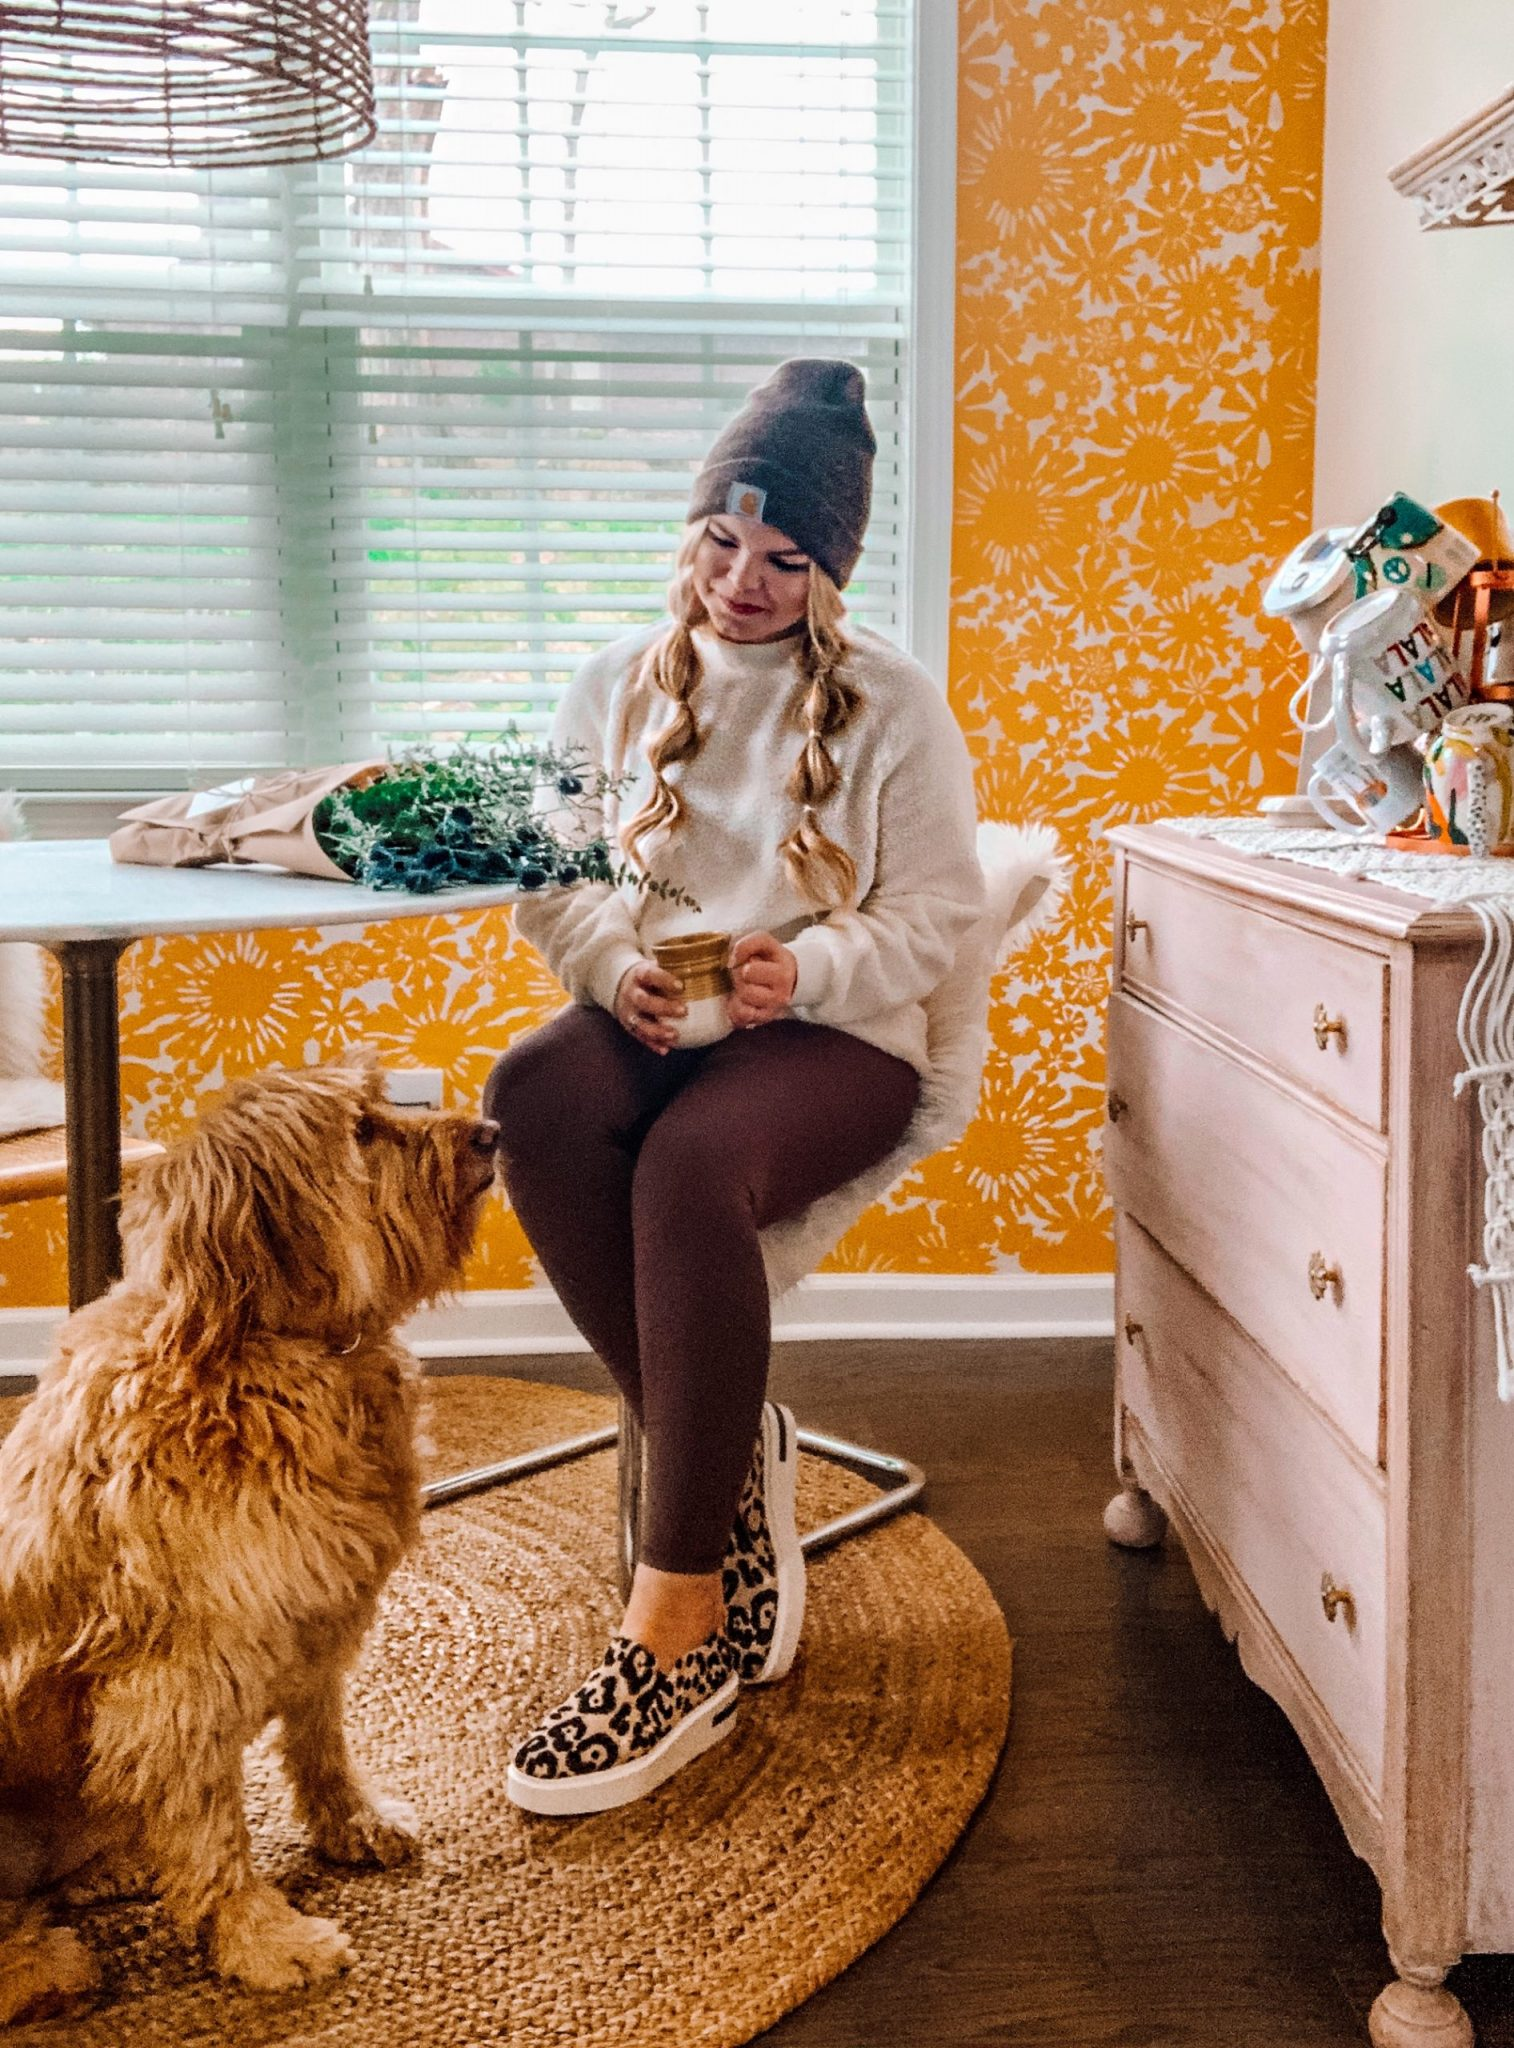 Lacey Anne Douthat of The Glitter Gospel shares her journey with mental health in hopes of inspiring others to take charge of their own. Mental health awareness, mental Health,Depression, Anxiety, PTSD, Breakfast Nook, Goldendoodle, Linea Paolo, Leopard Sneakers, Slip on Sneakers, Carhart Beanie, Aerie Leggings, Tennessee Blogger